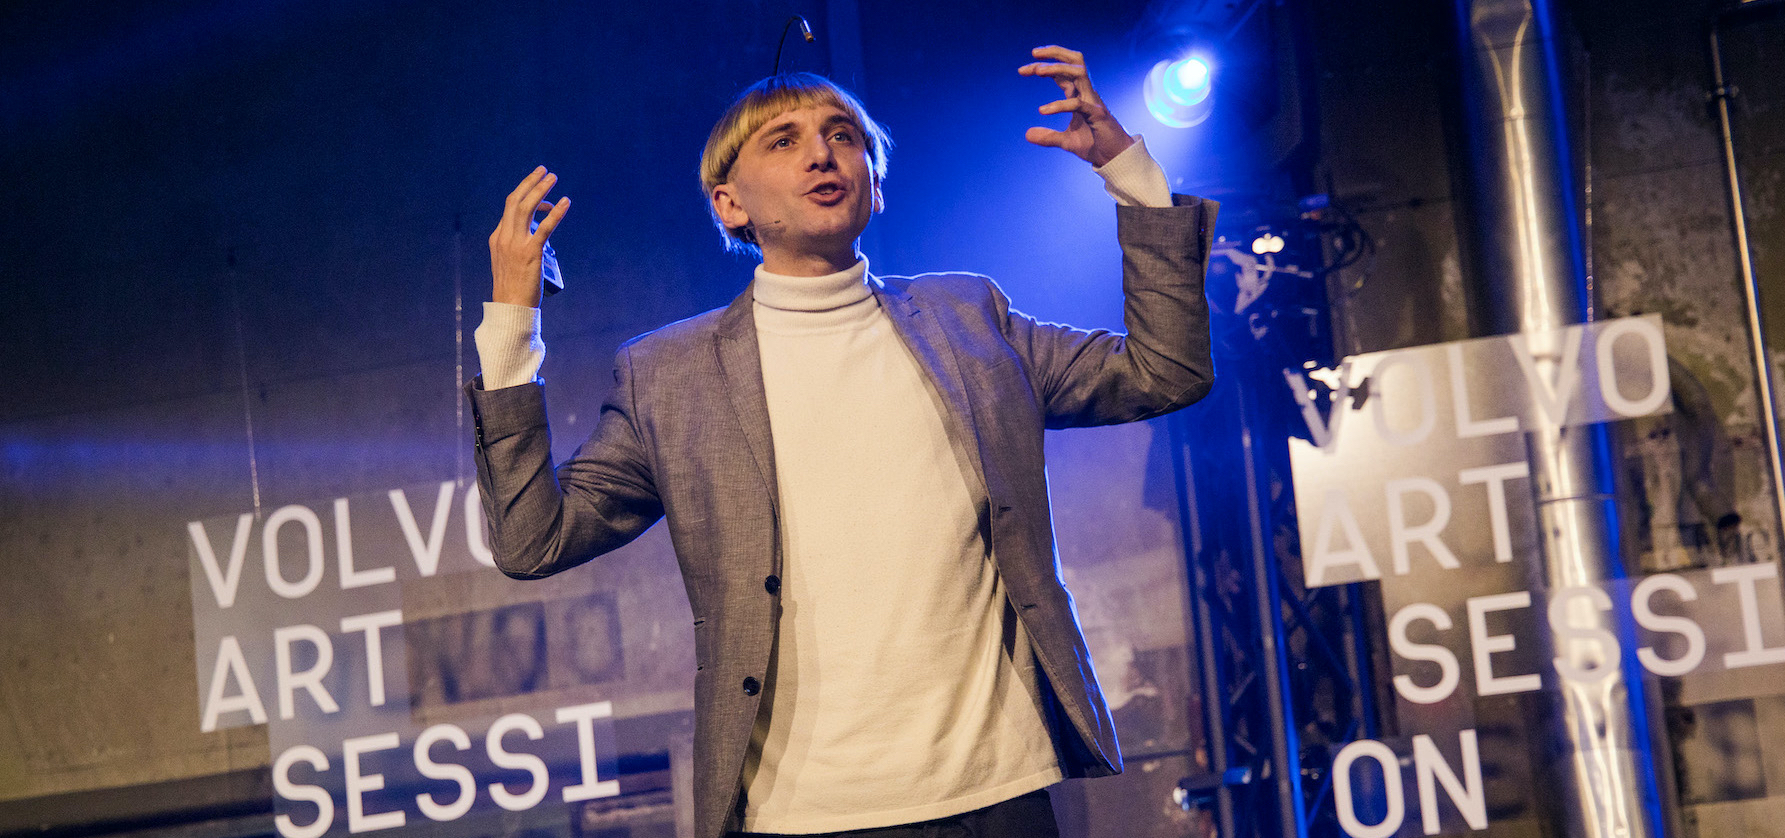 Cyborg Neil Harbisson Volvo Art Session 2019